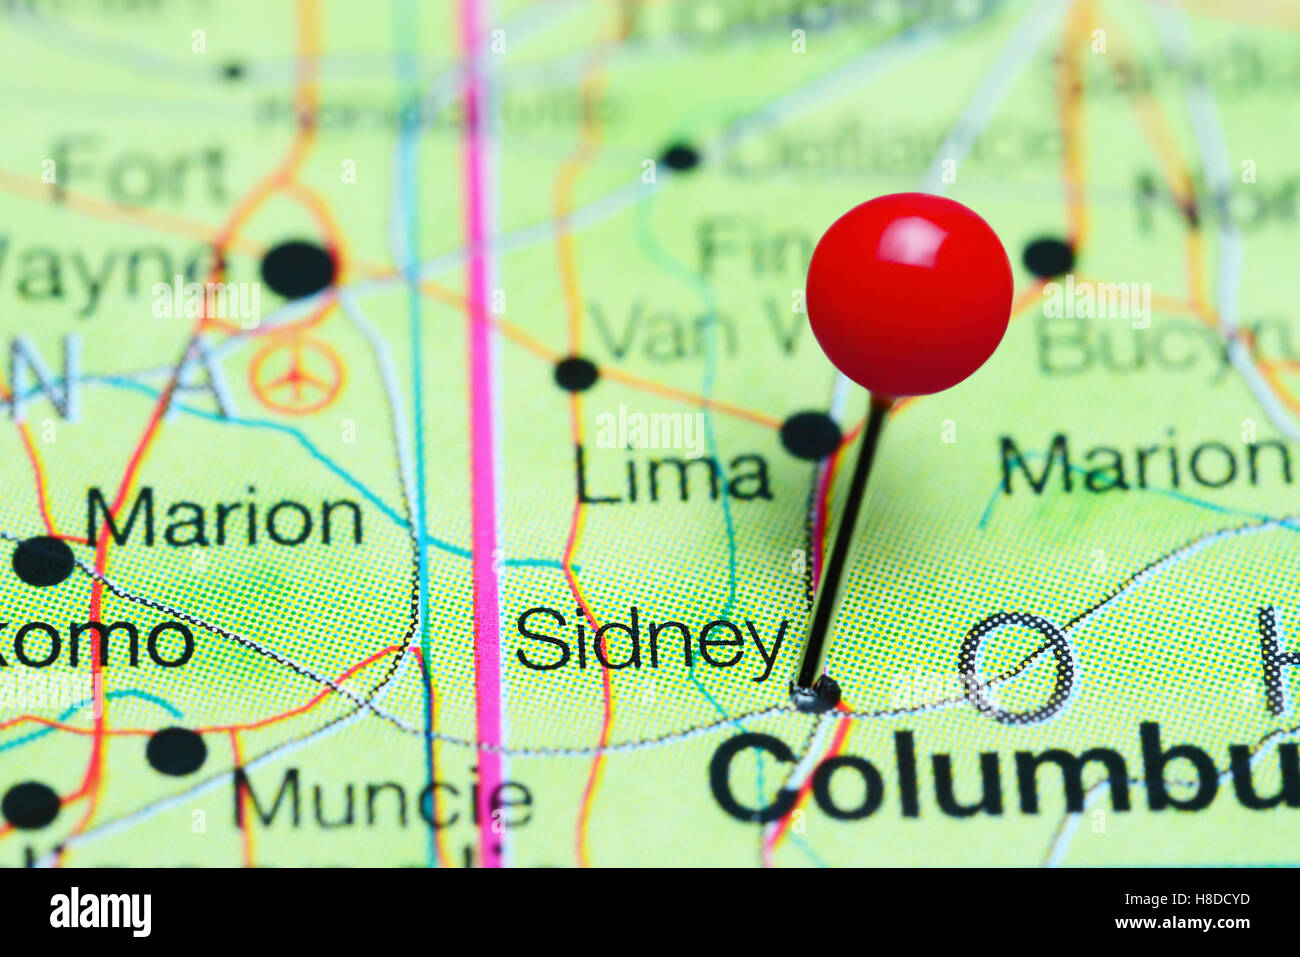 Sidney Pinned On A Map Of Ohio Usa Stock Photo 125685377 Alamy